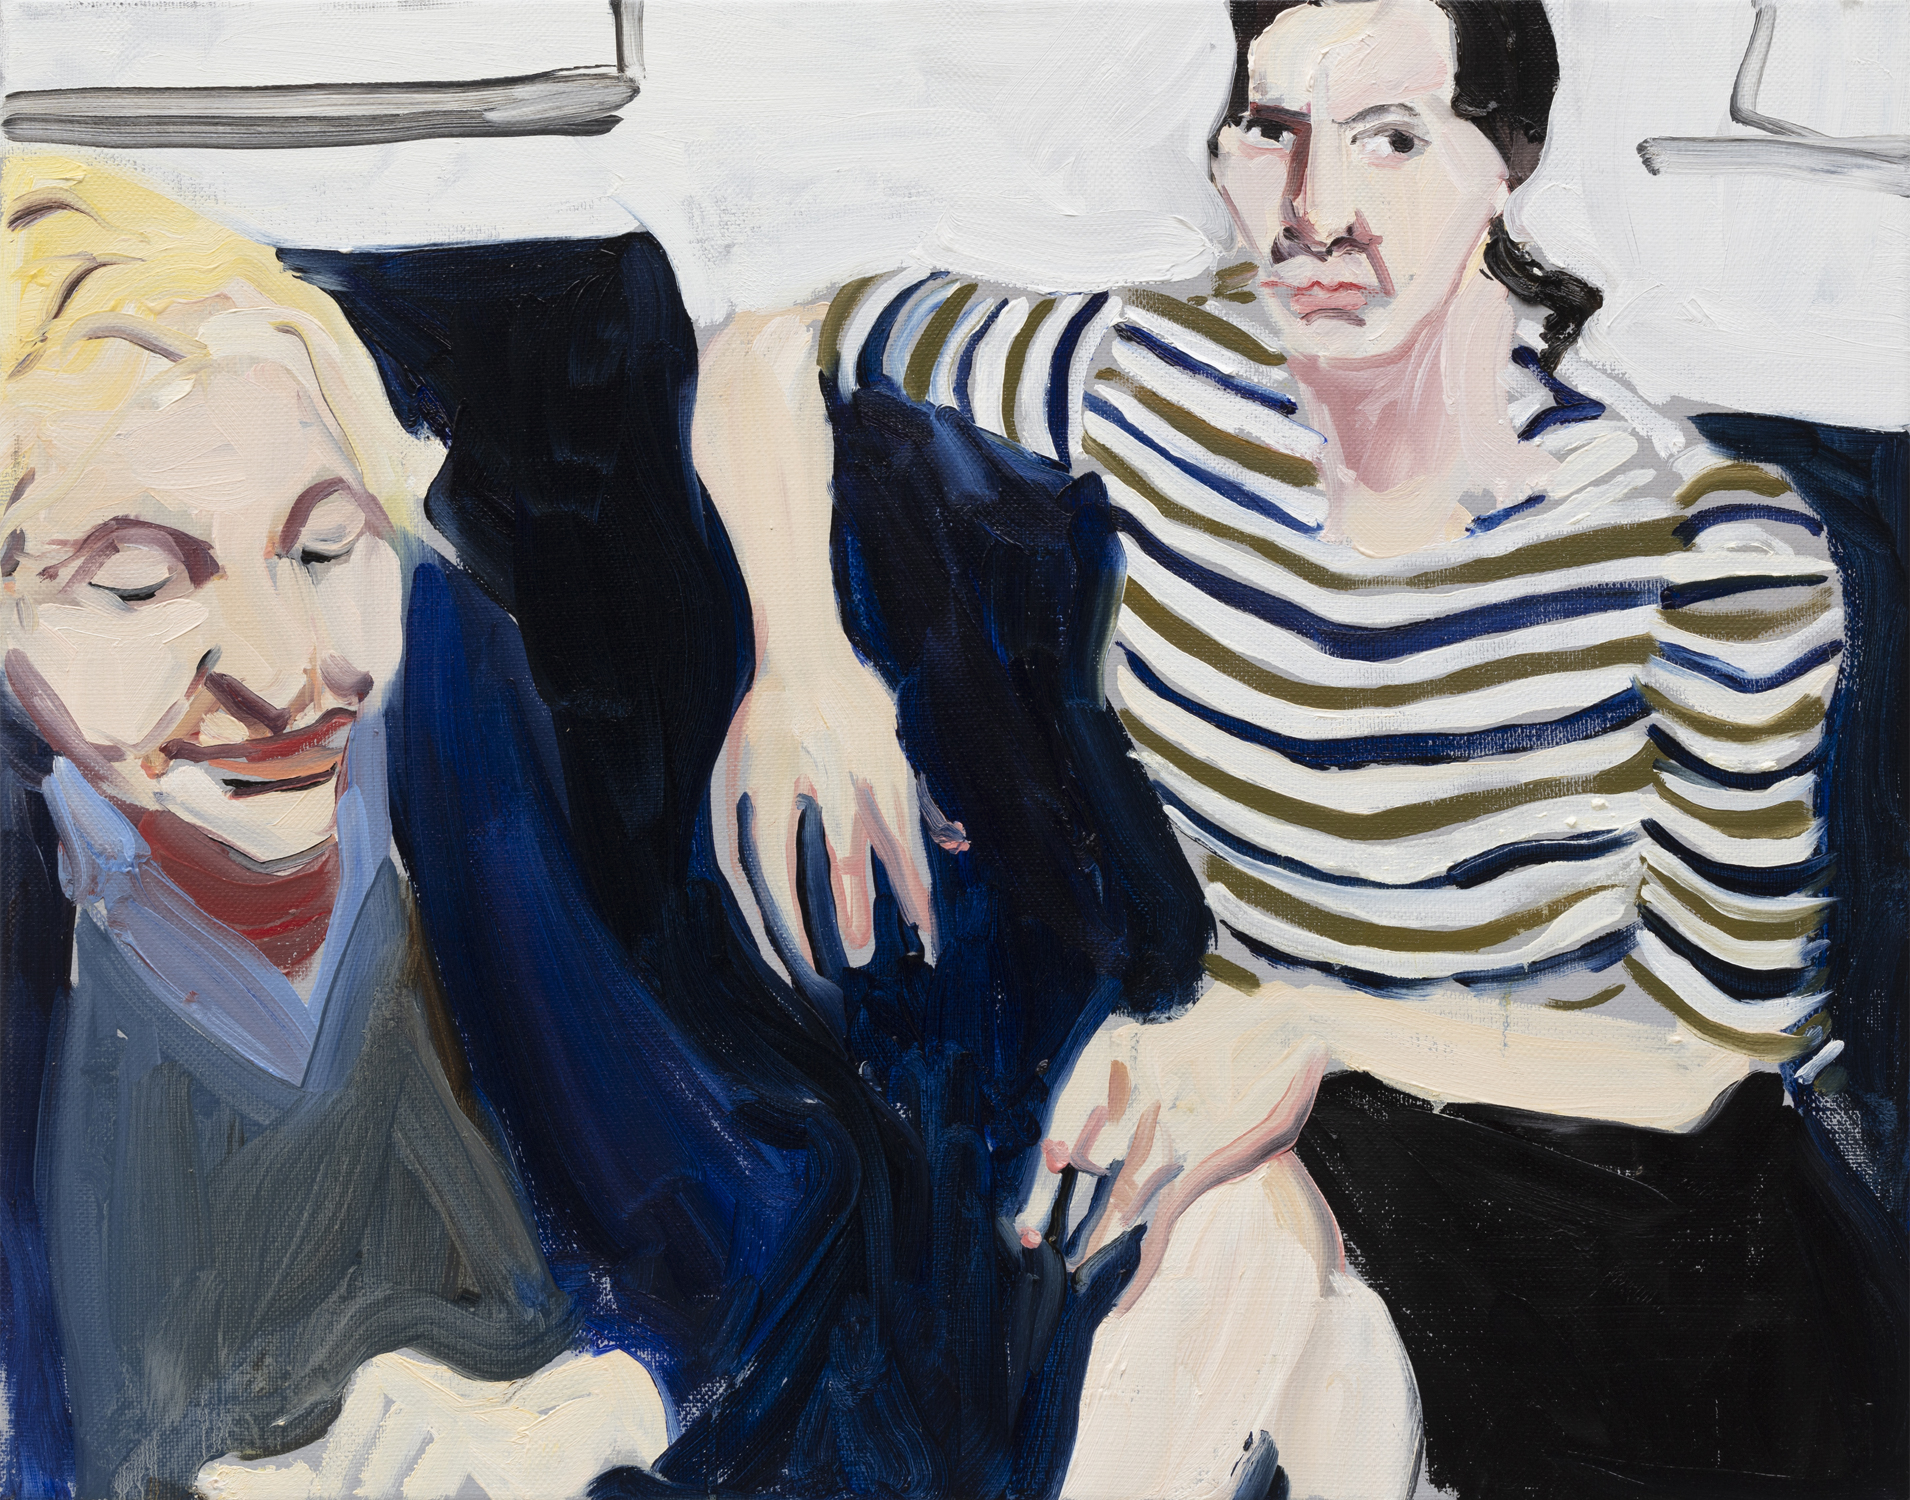 Chantal Joffe, Self-Portrait in Striped Shirt with My Mother_2019 Oil on canvas 49.5 x 39.5 cm, © Courtesy the artist and Victoria Miro.